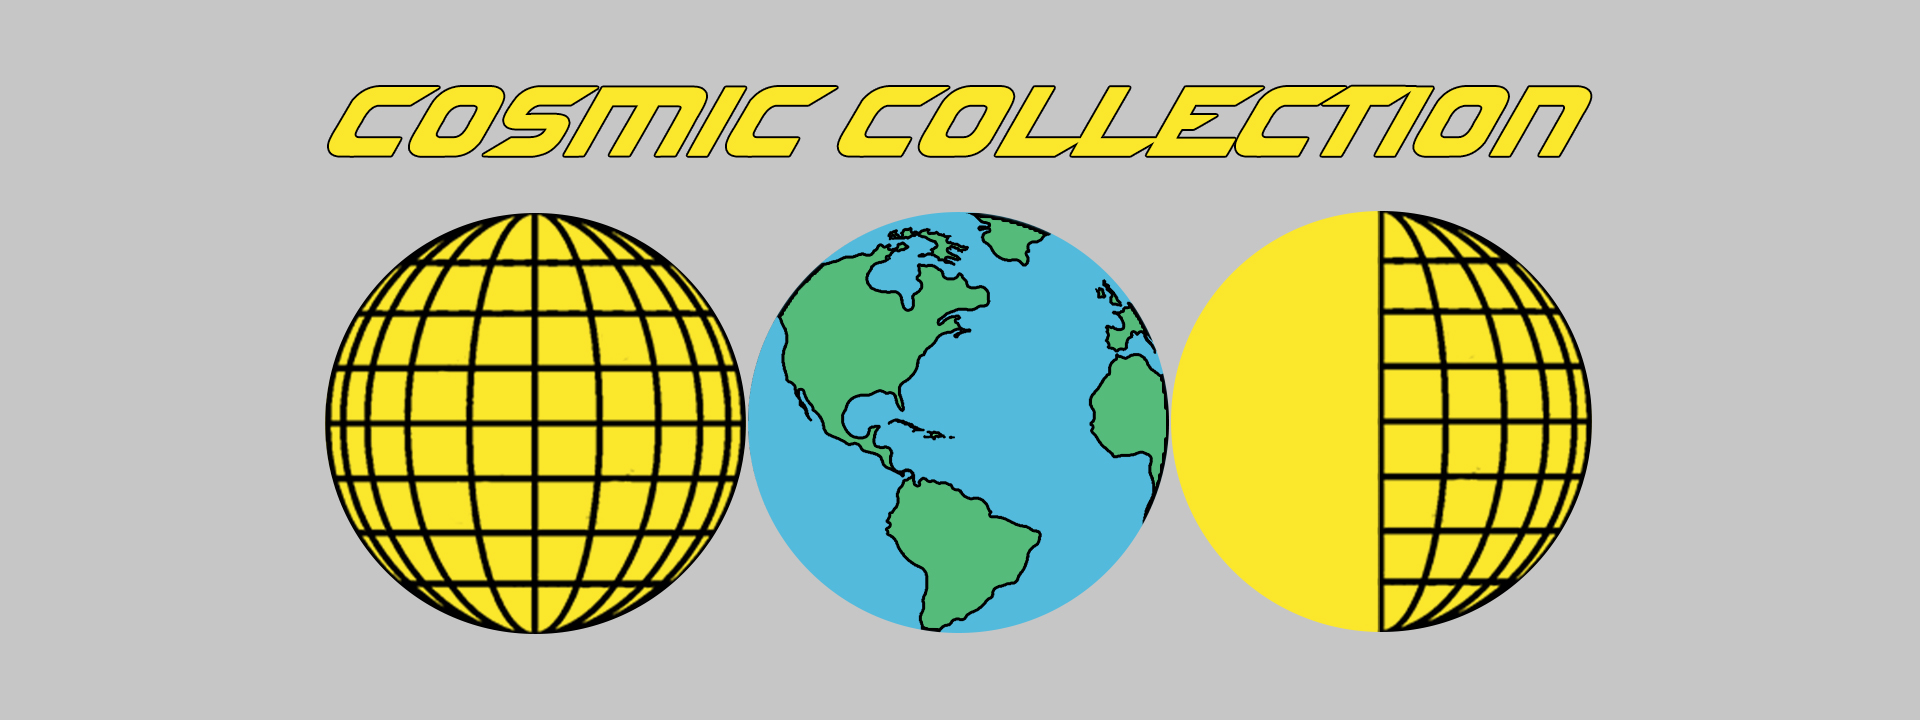 Cosmic Colleciton